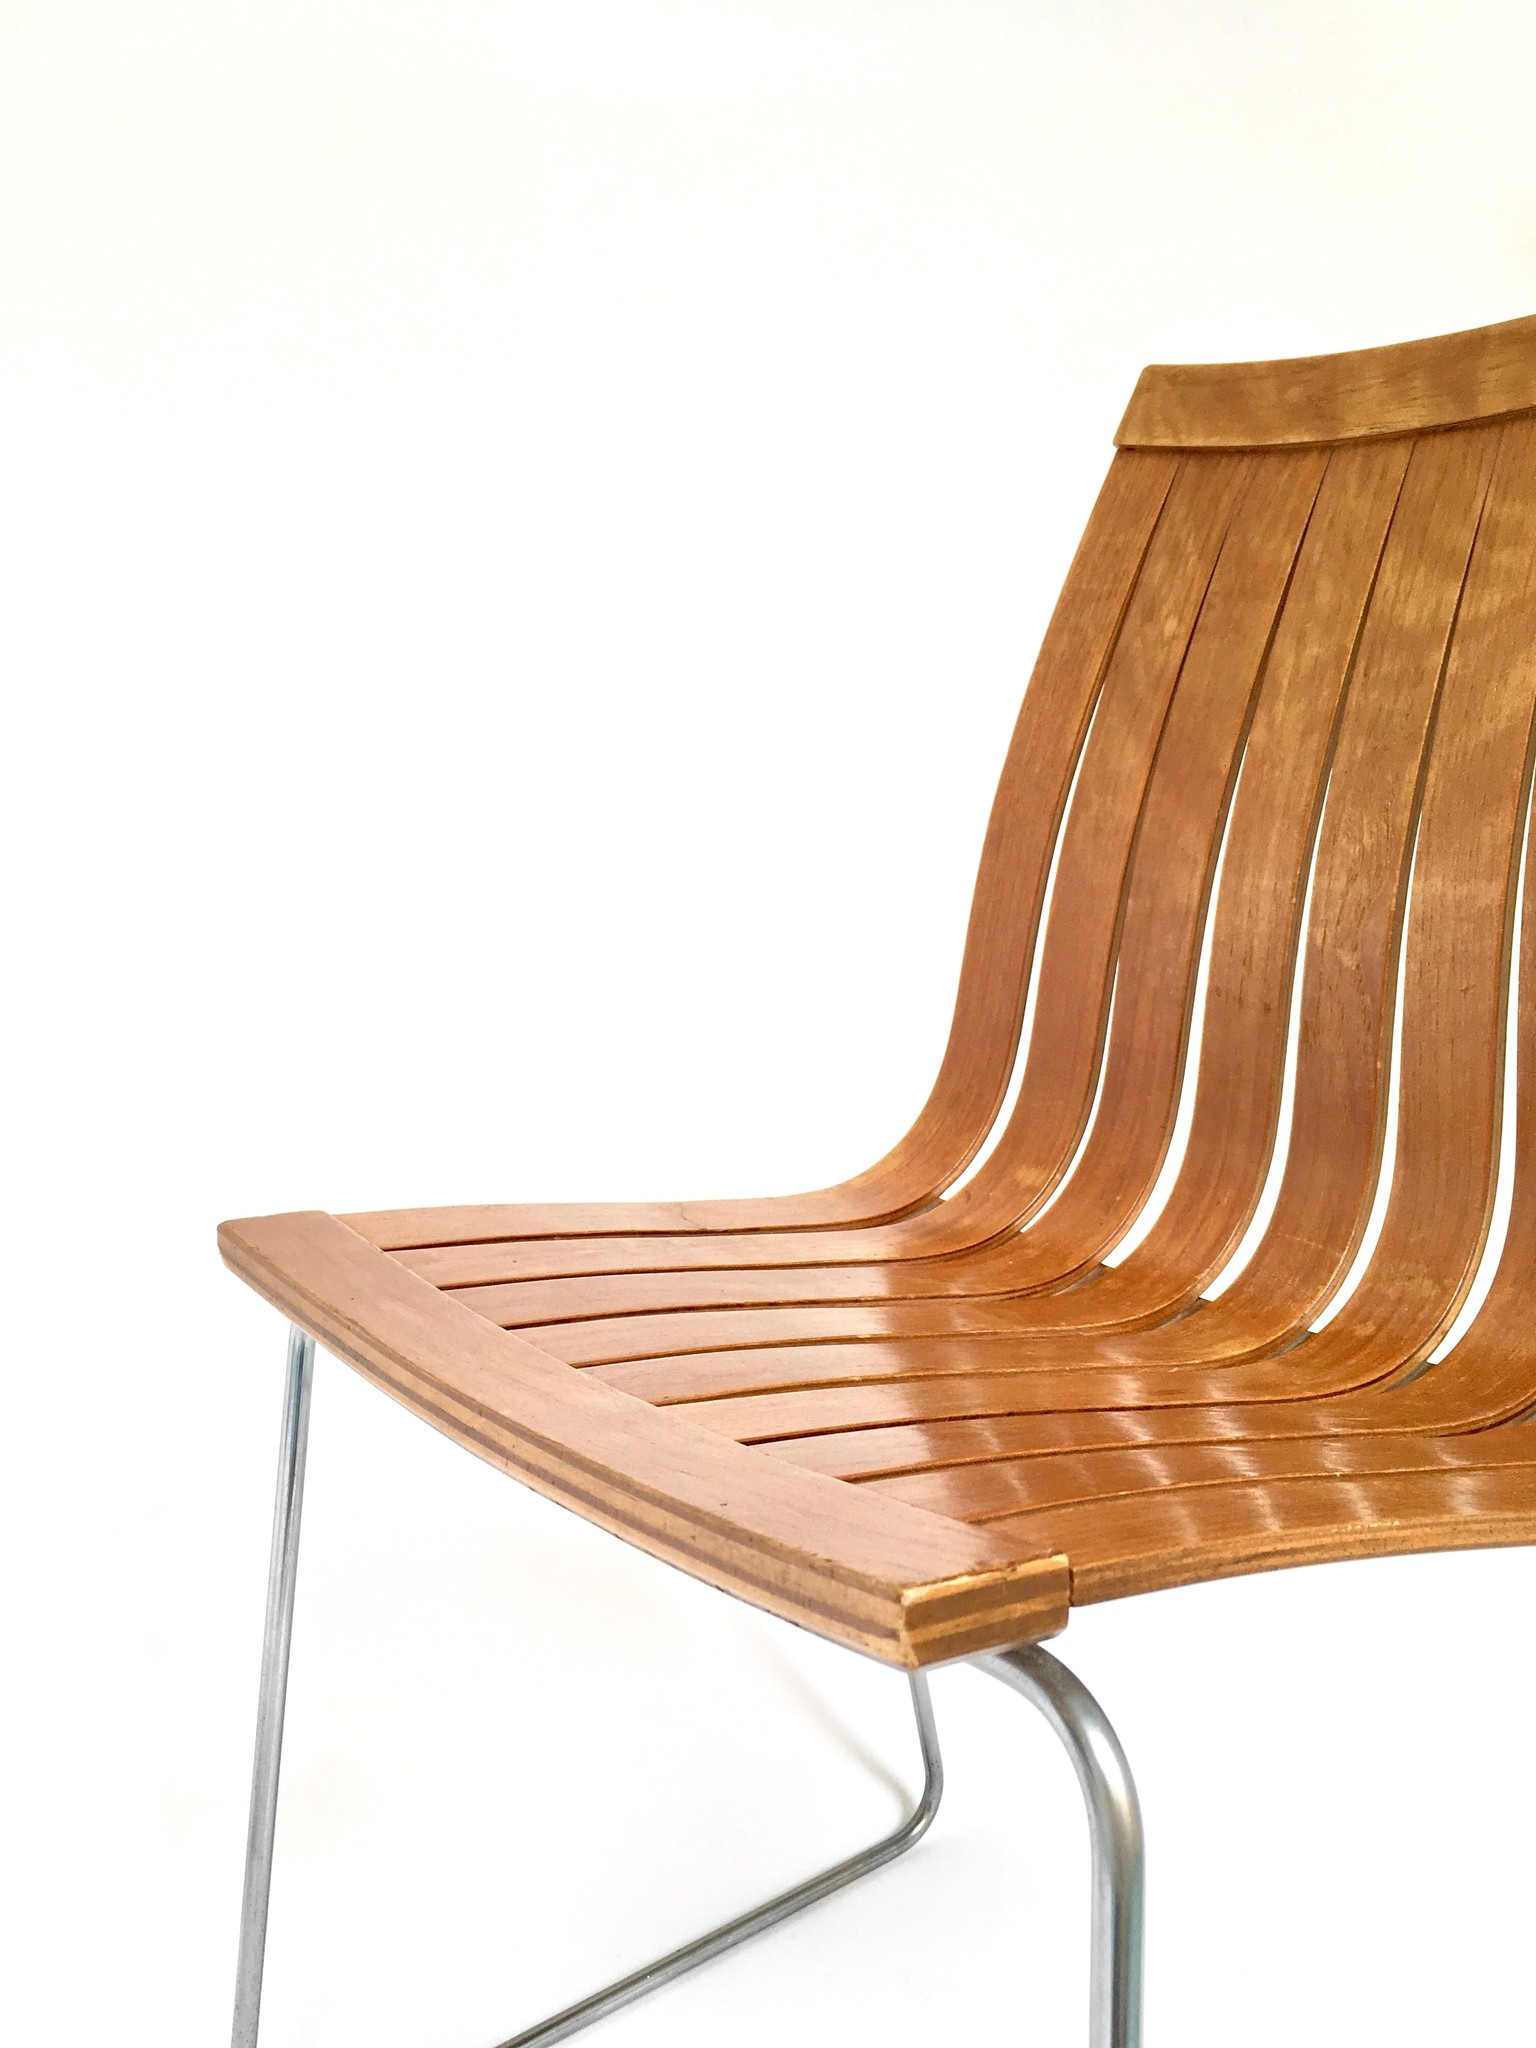 Kjell Richardsen table and two chairs